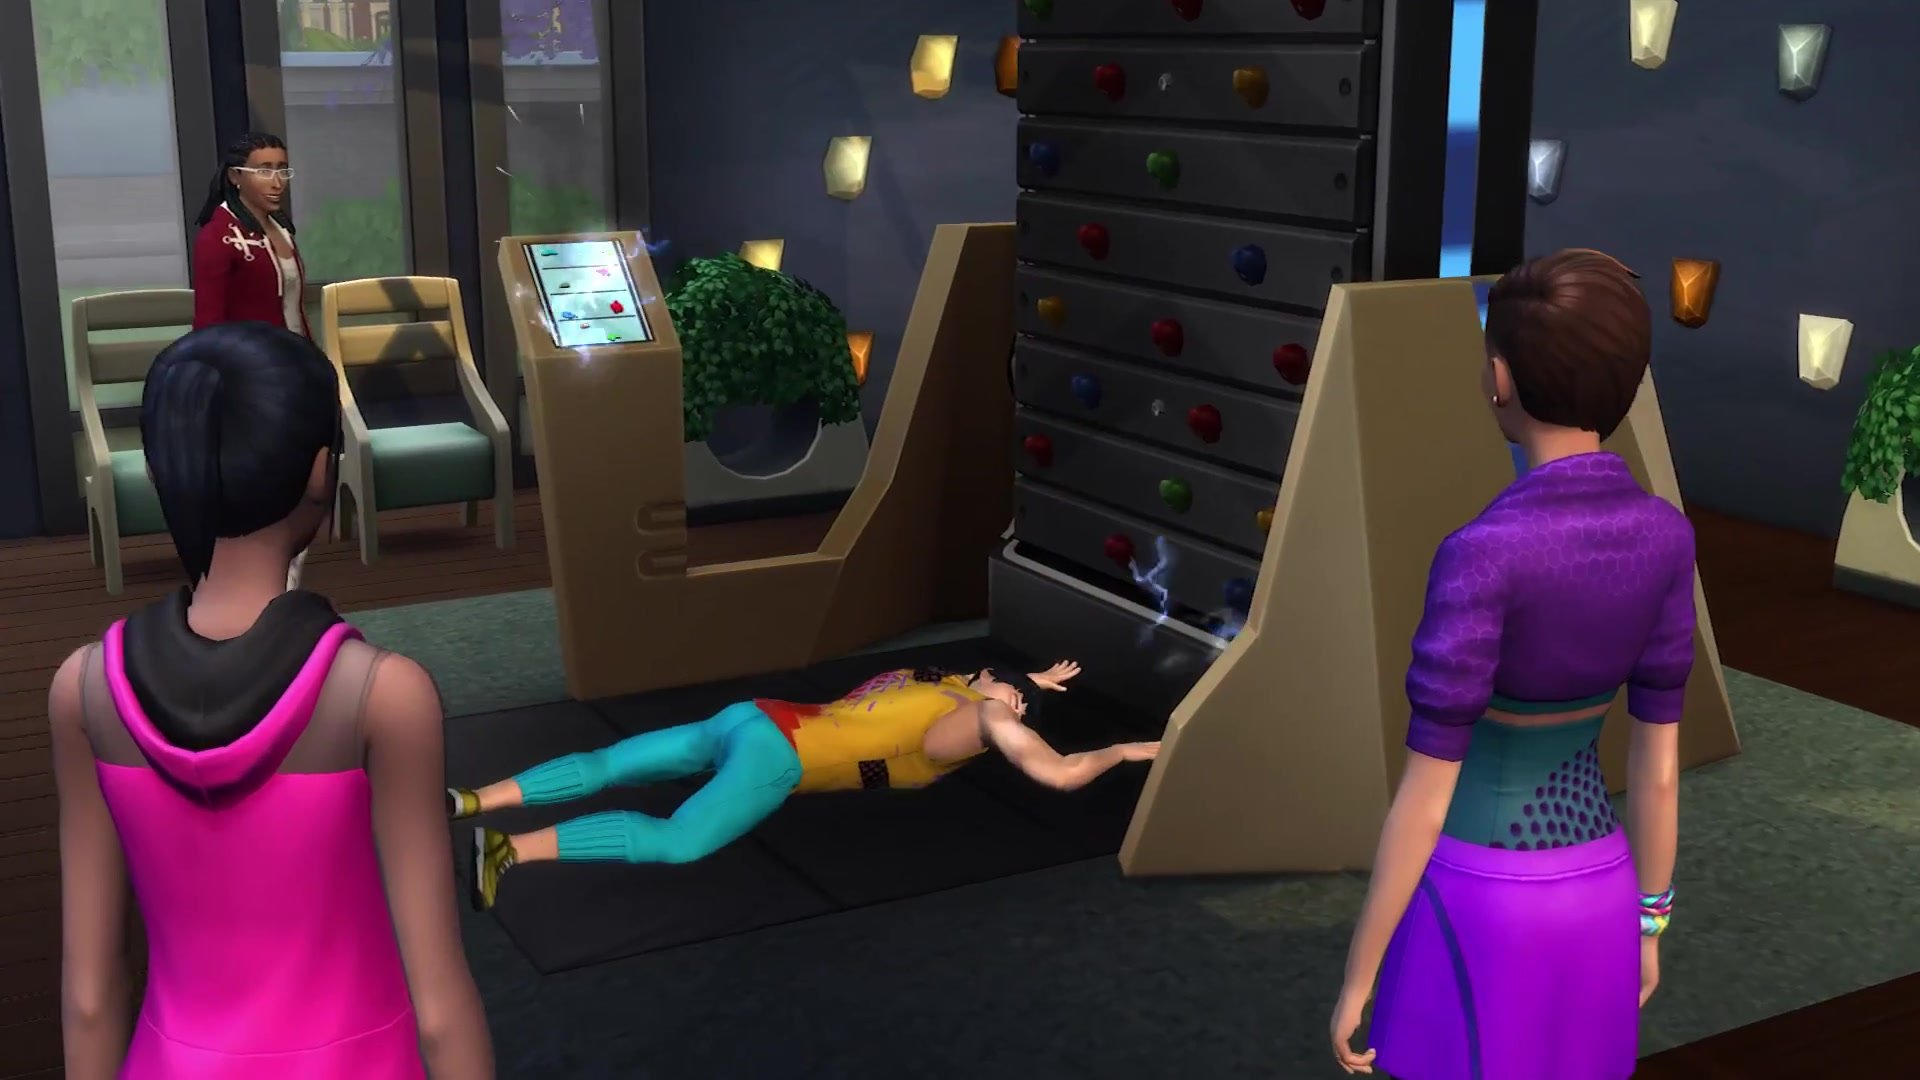 The Sims 4 Fitness